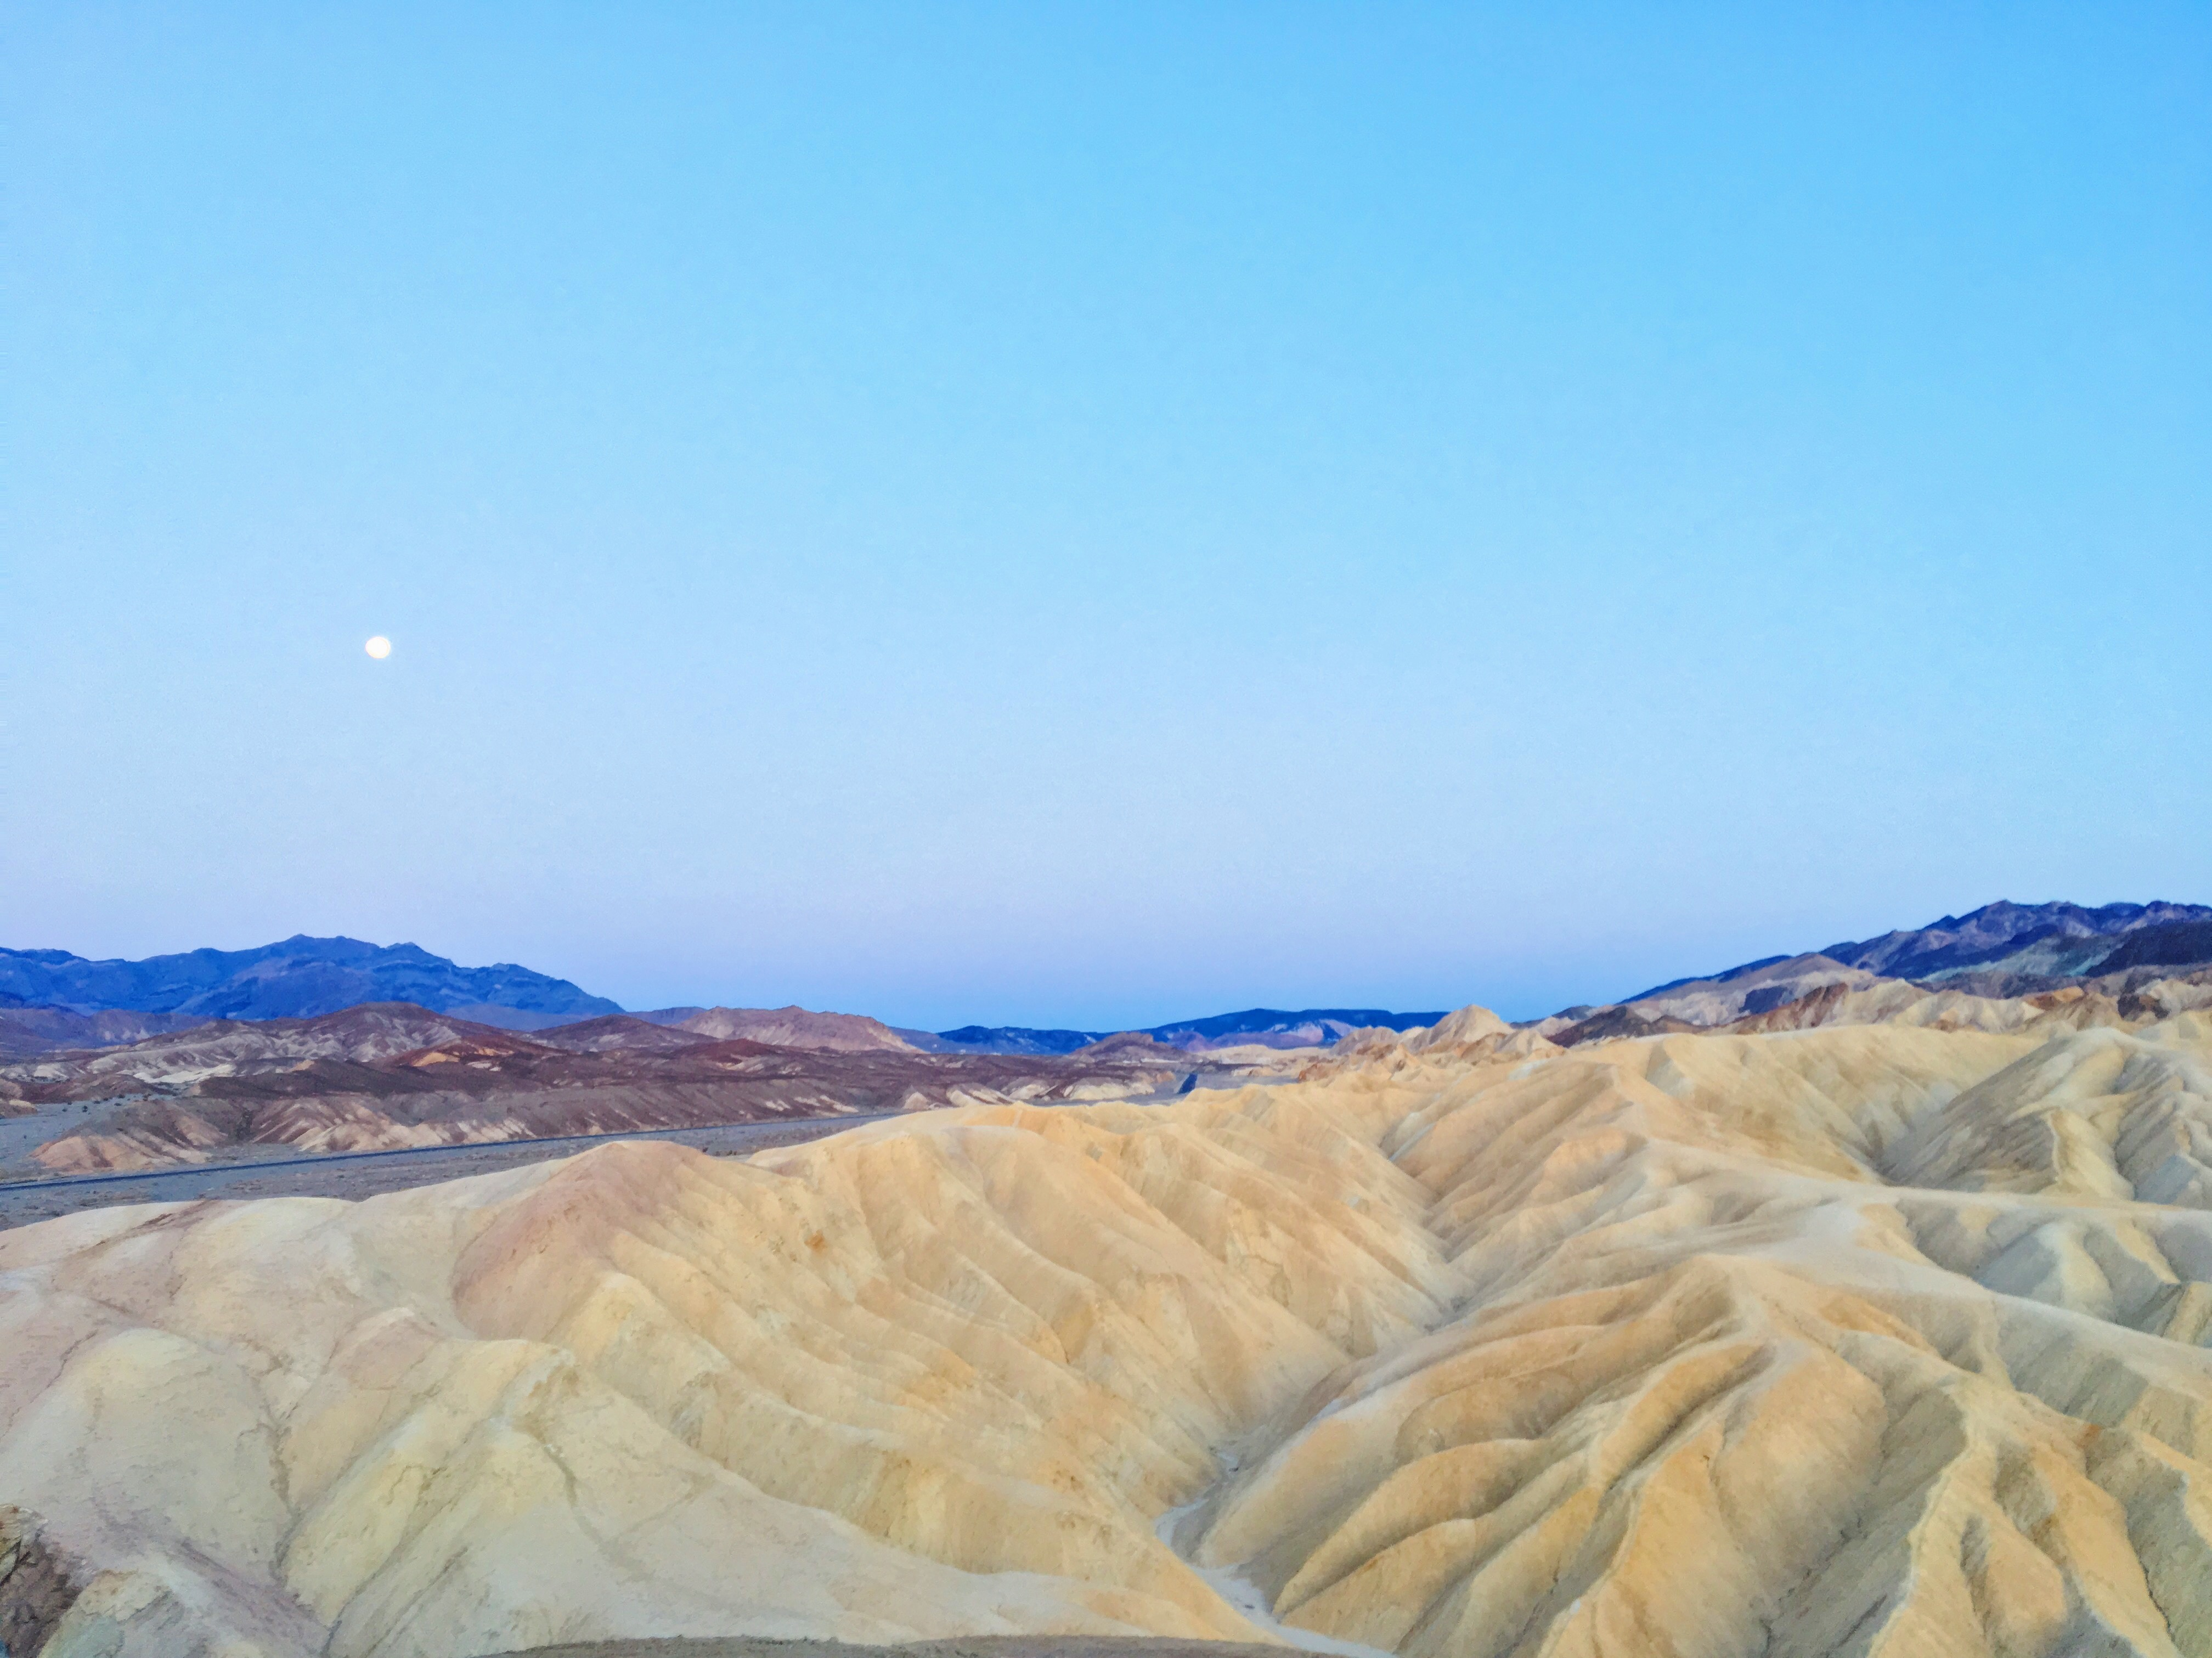 Il tramonto allo Zabriskie Point - Death Valley2